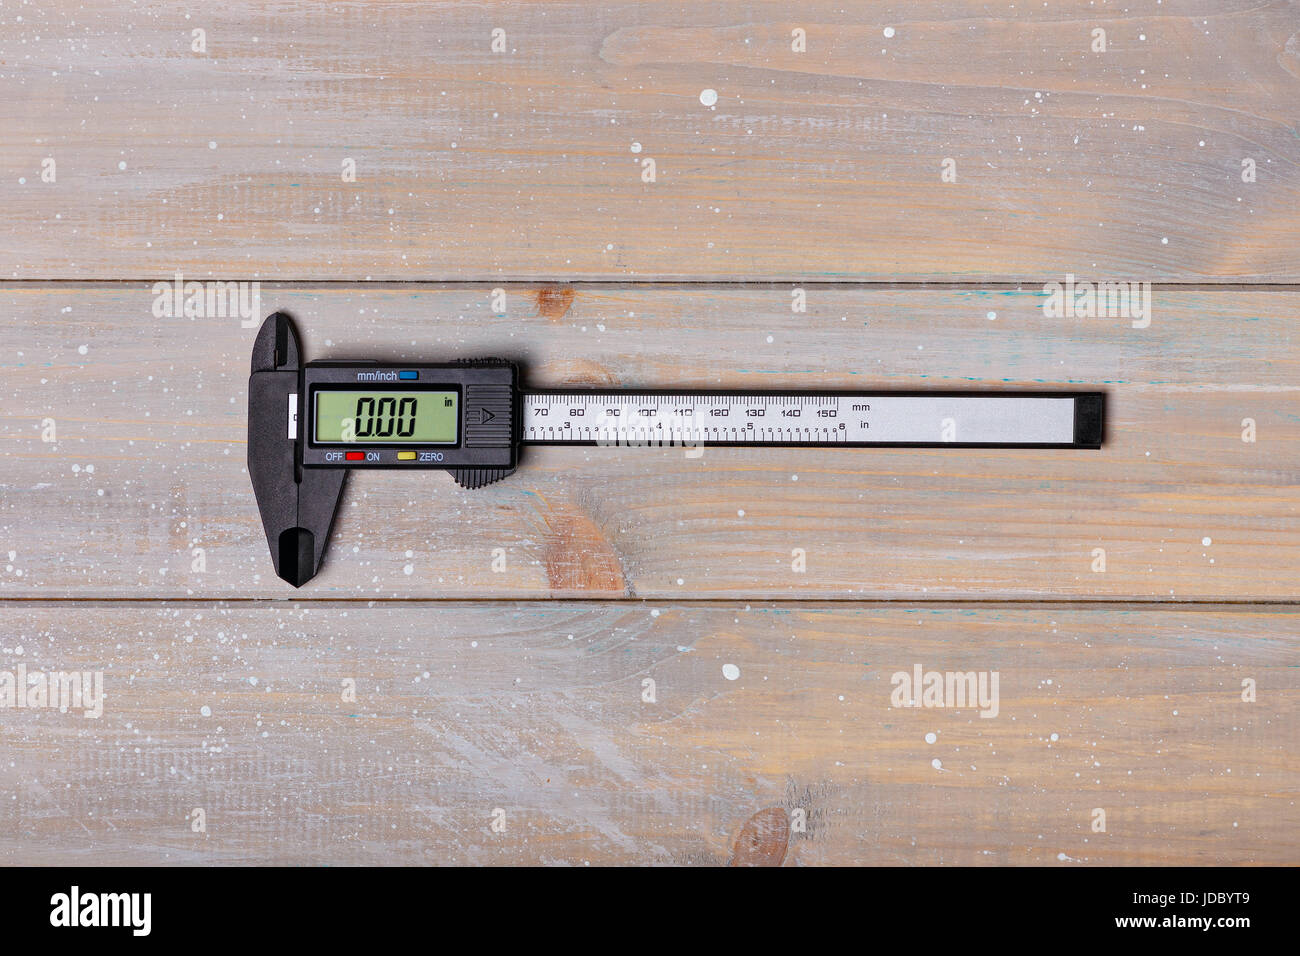 Closed digital caliper lies in the middle of a wooden table - Stock Image